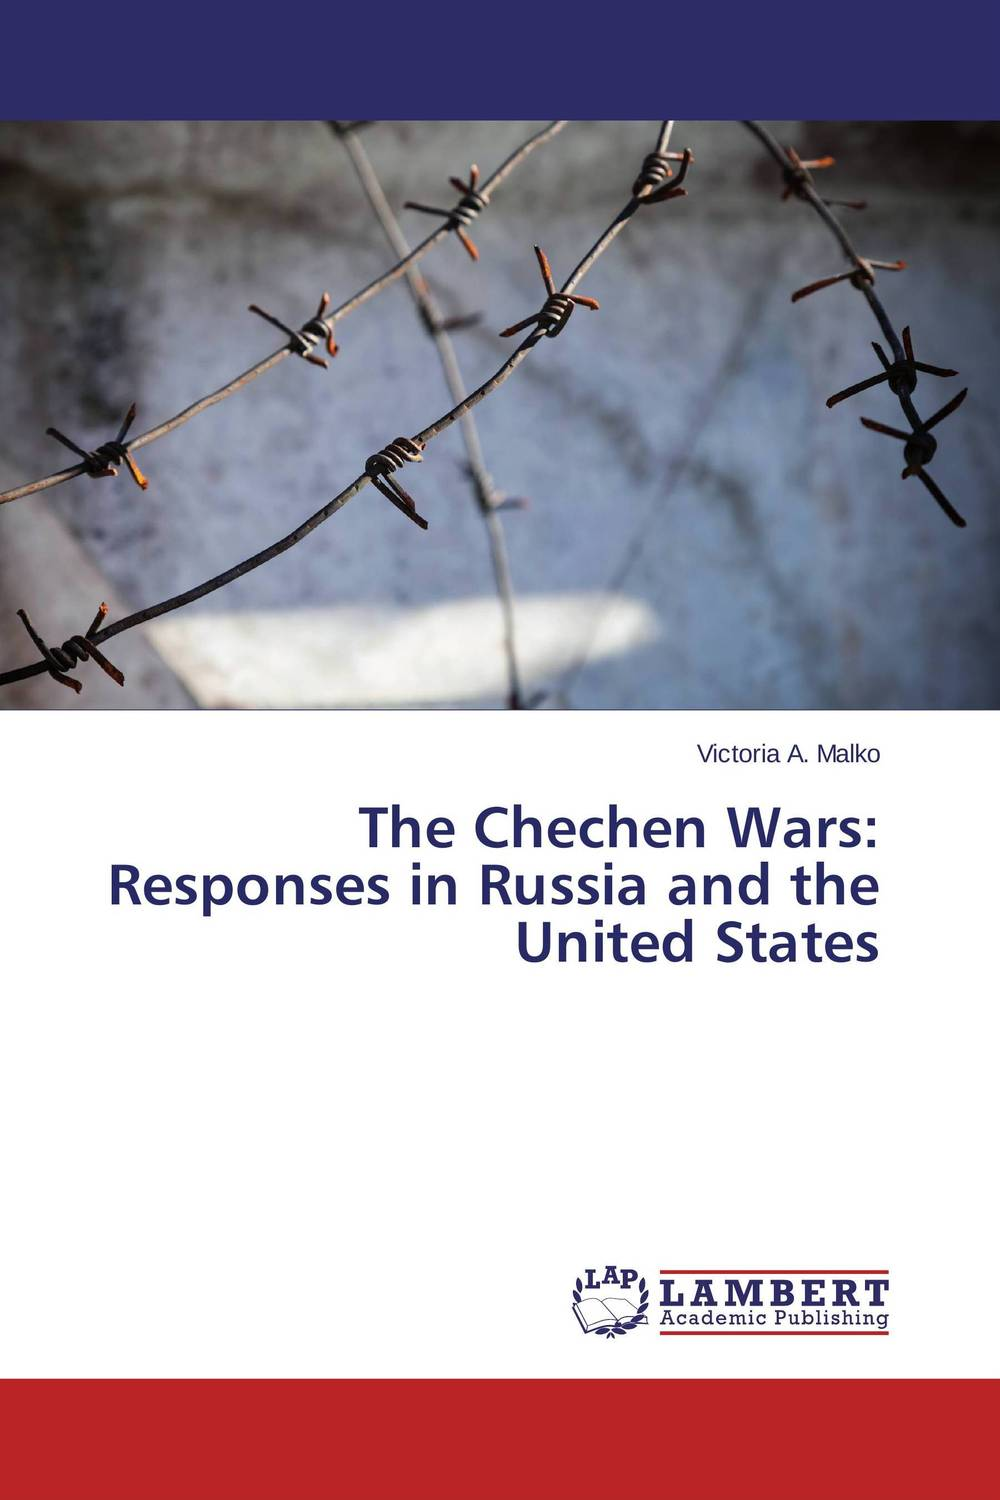 The Chechen Wars: Responses in Russia and the United States voluntary associations in tsarist russia – science patriotism and civil society